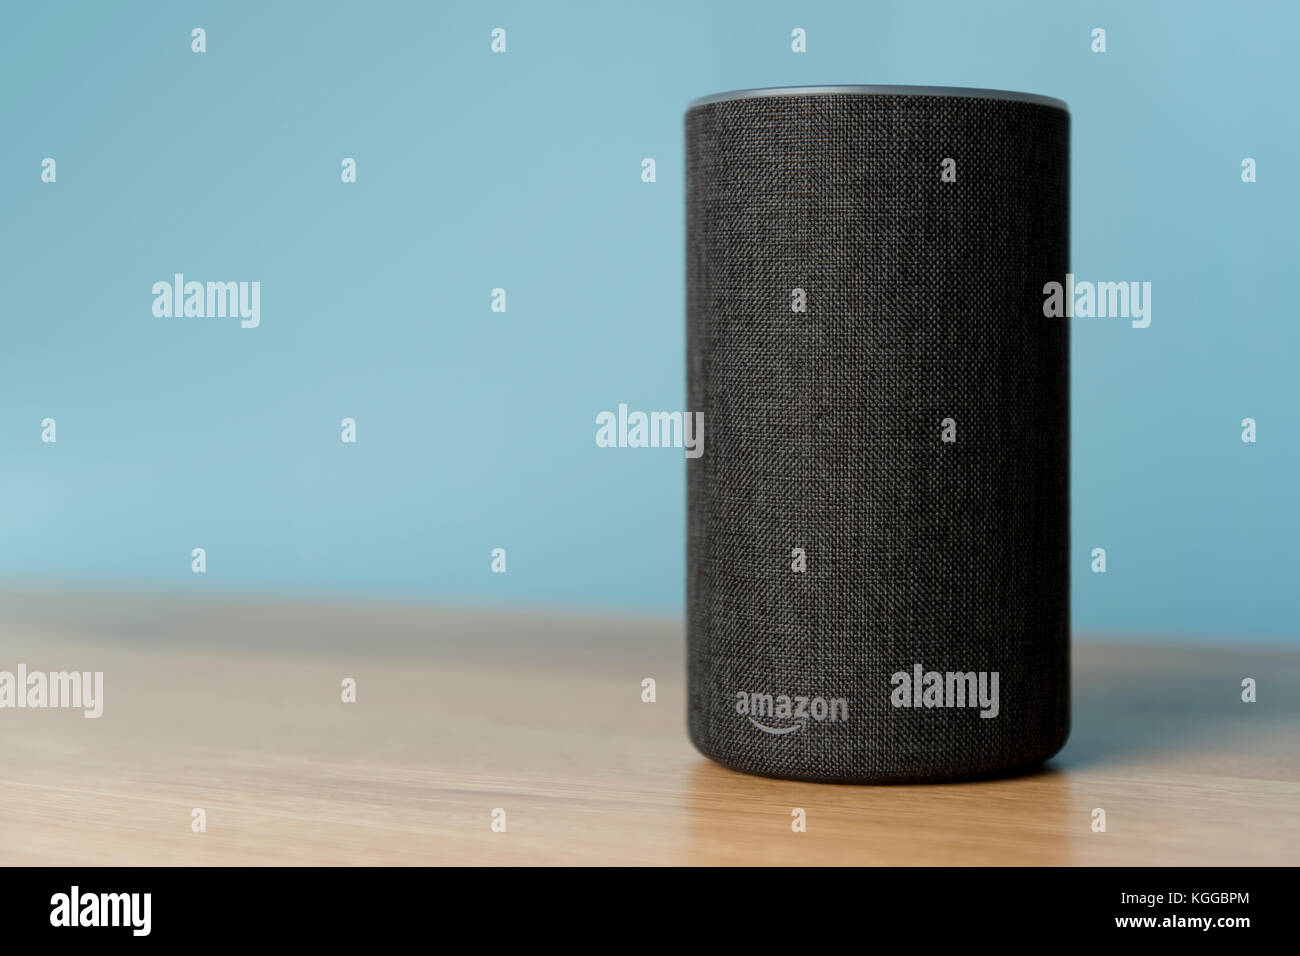 The 2017 release of a charcoal Amazon Echo (2nd generation) smart speaker and personal assistant Alexa shot against Stock Photo